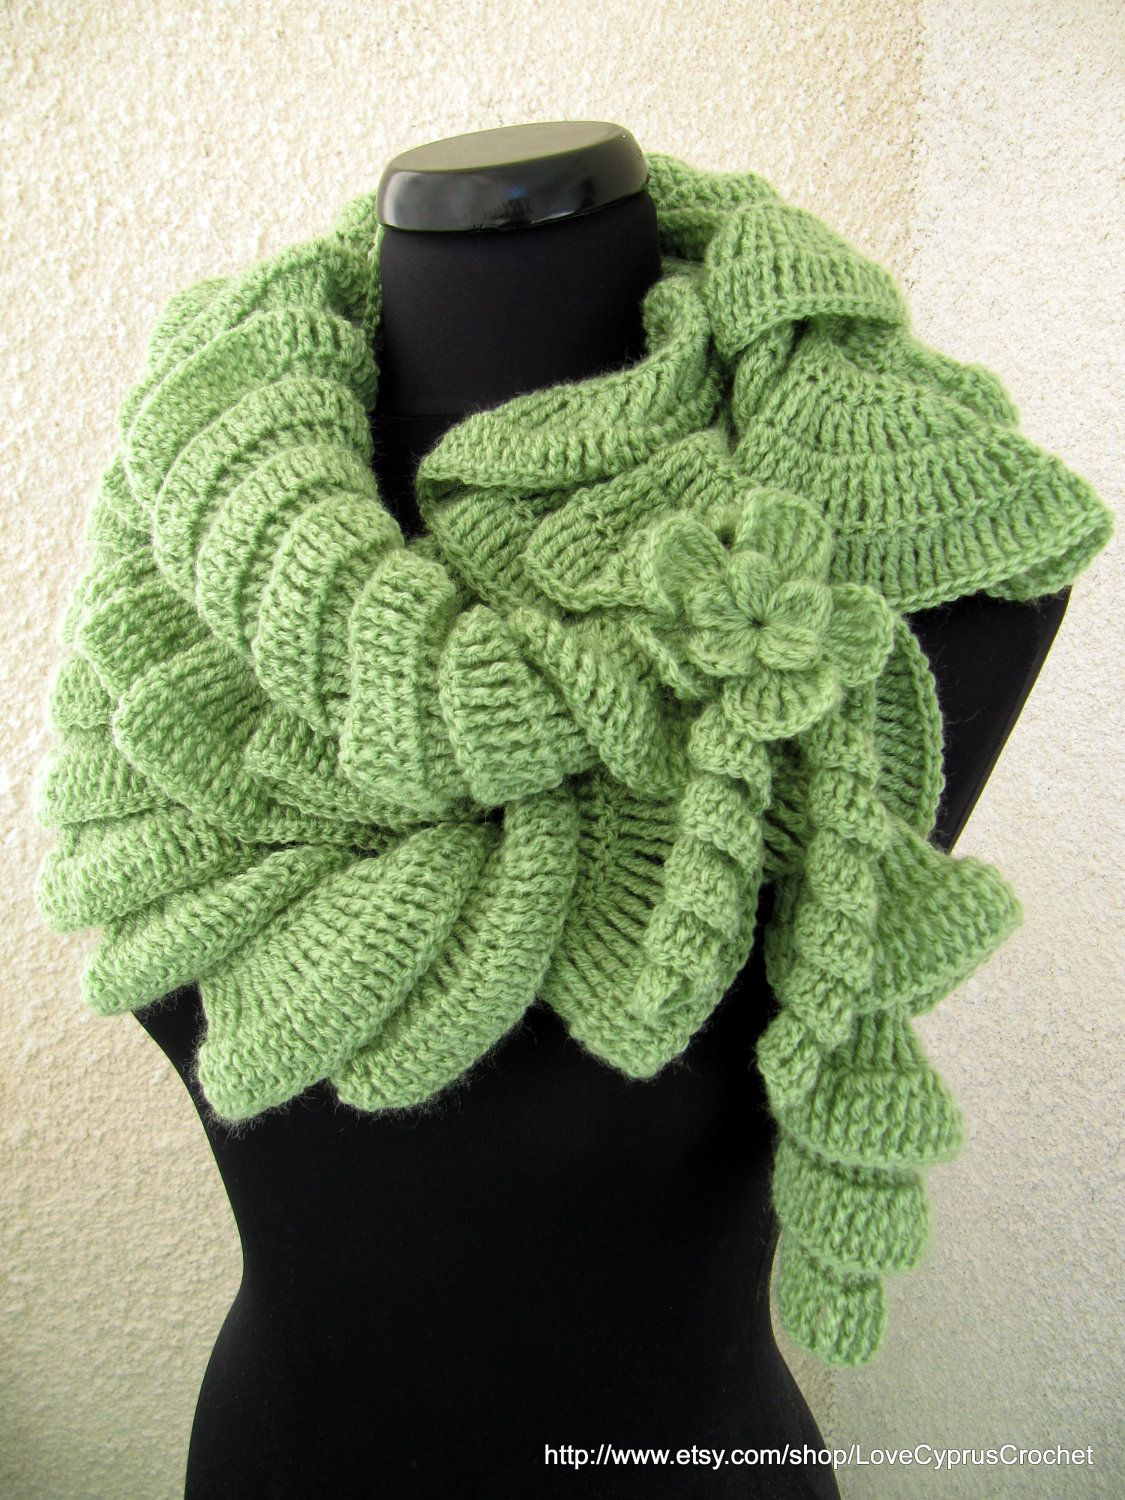 Ruffle Scarf Crochet Pattern Interesting Inspiration Design